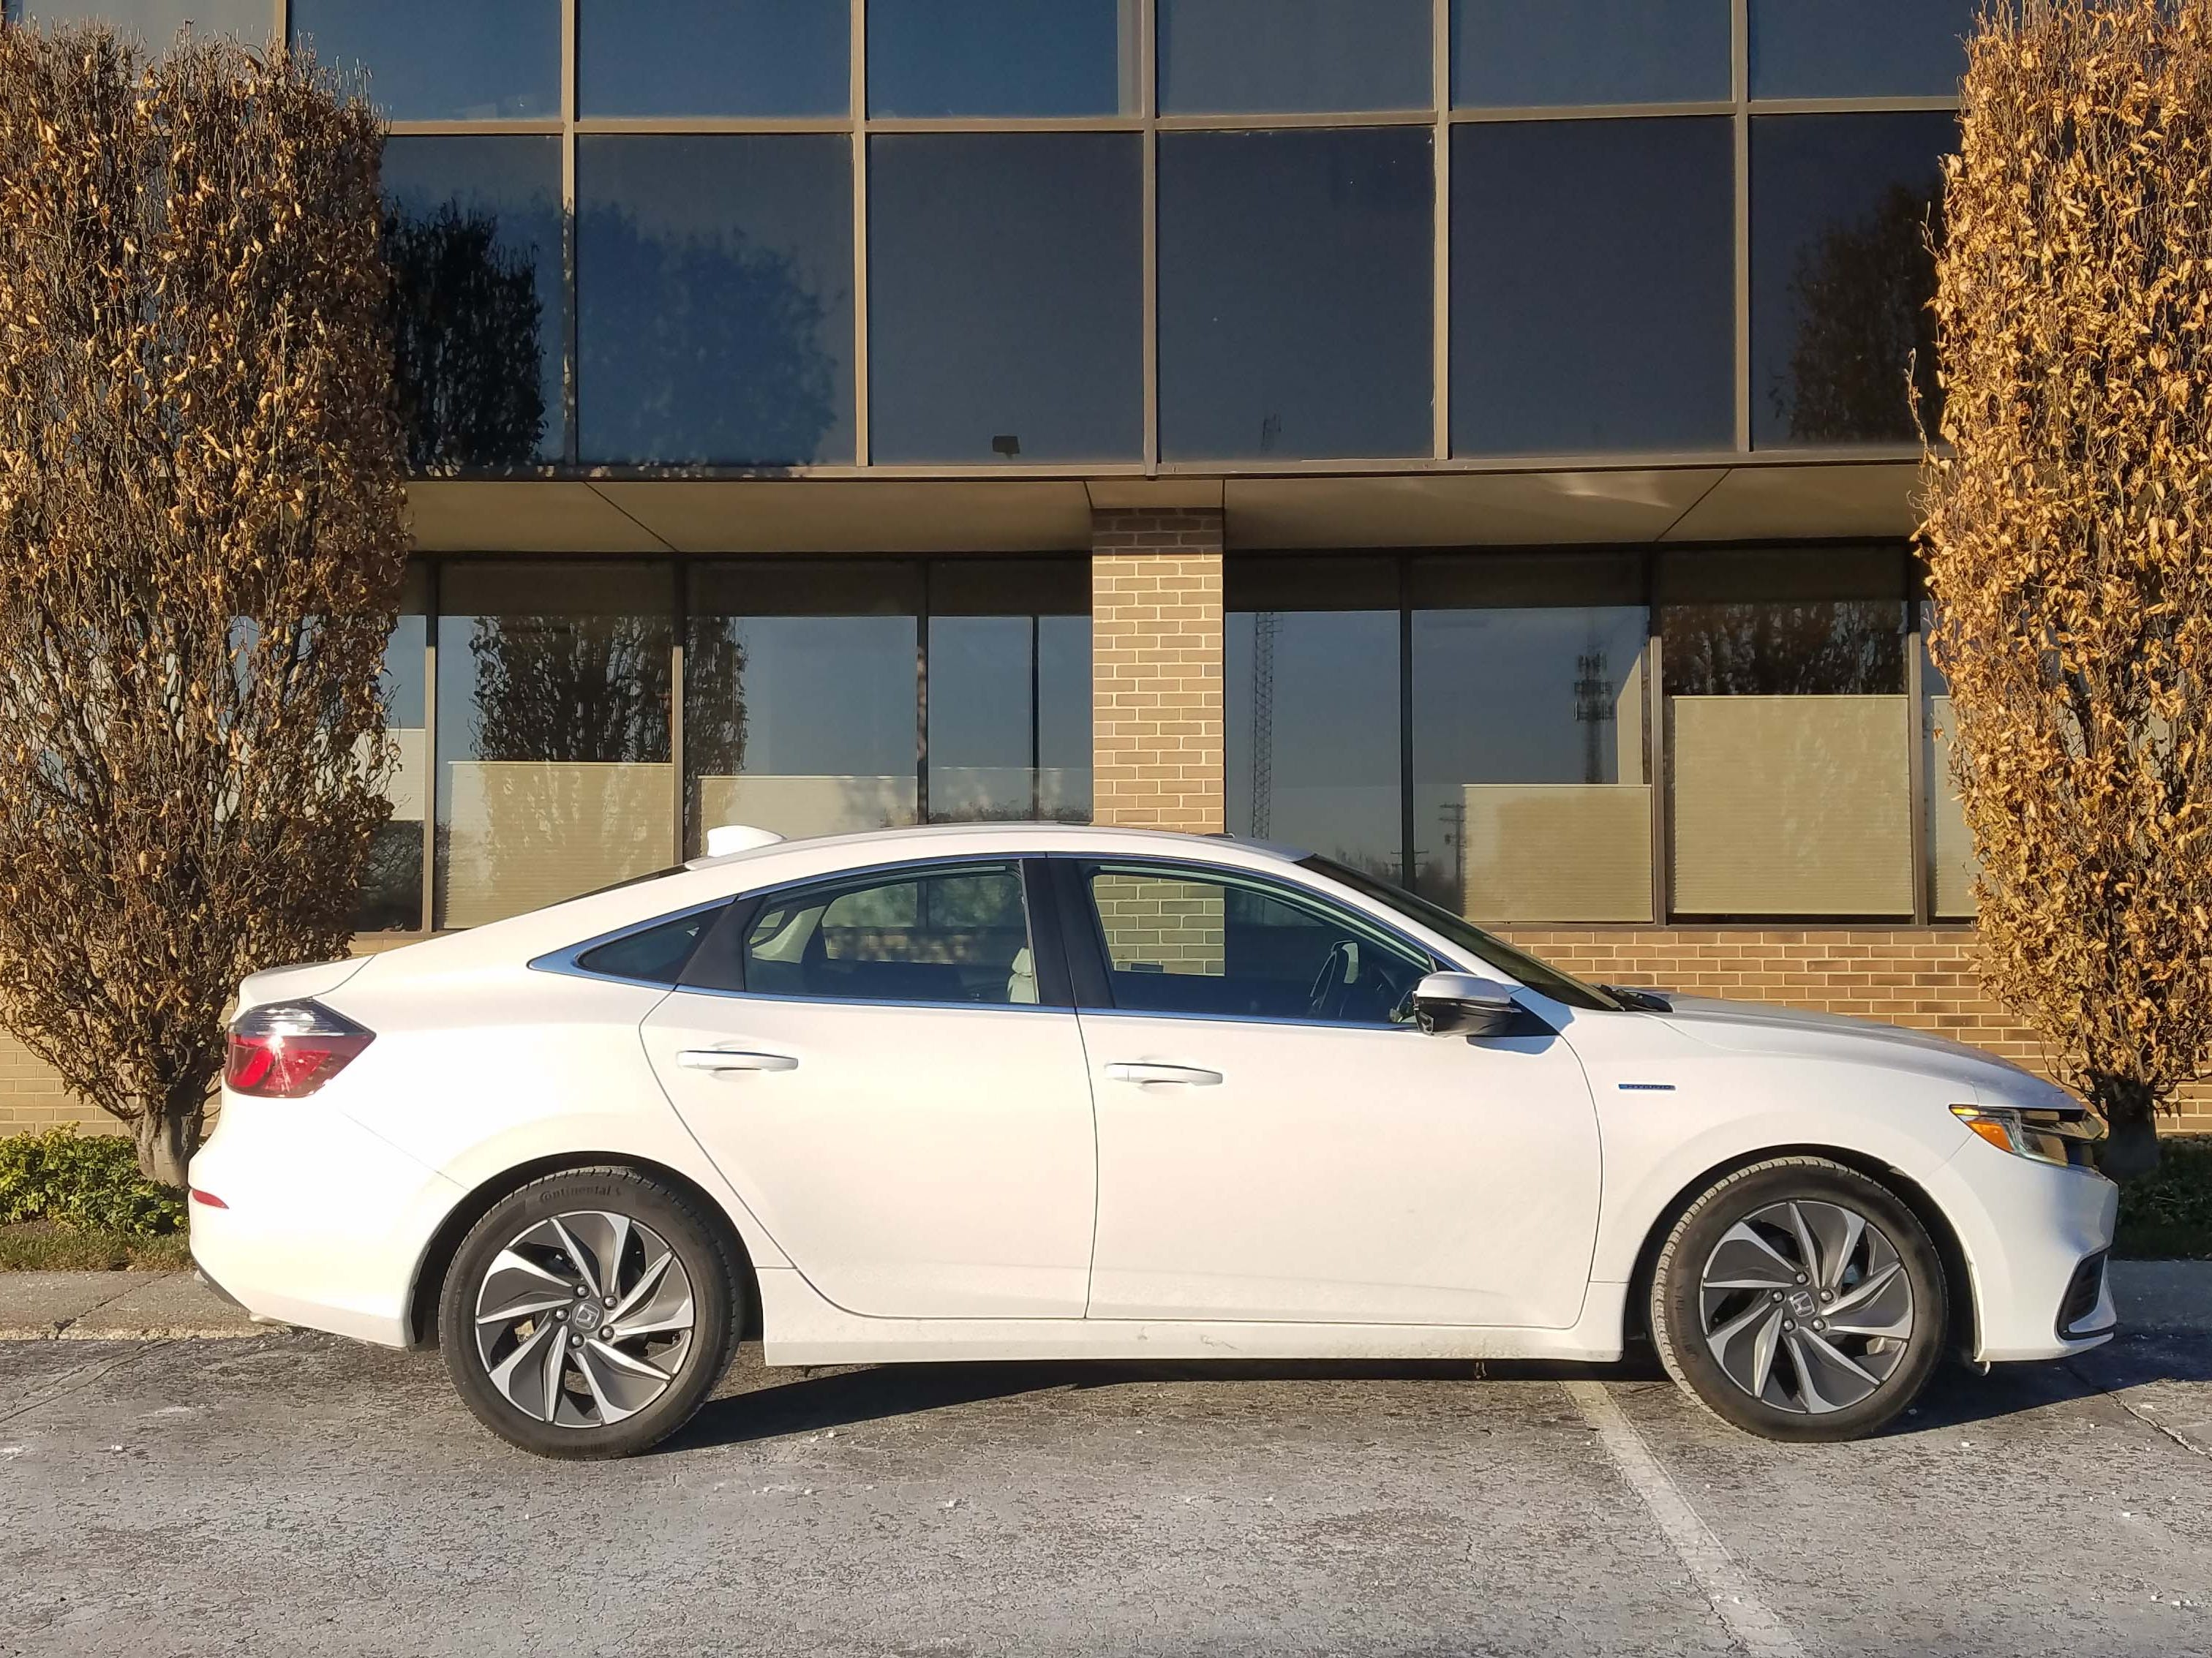 Affordable and handsome, the 2019 Honda Insight can be had for a price similar to that of the more powerful, but less efficient, 1.5-liter turbo-4 Civic.